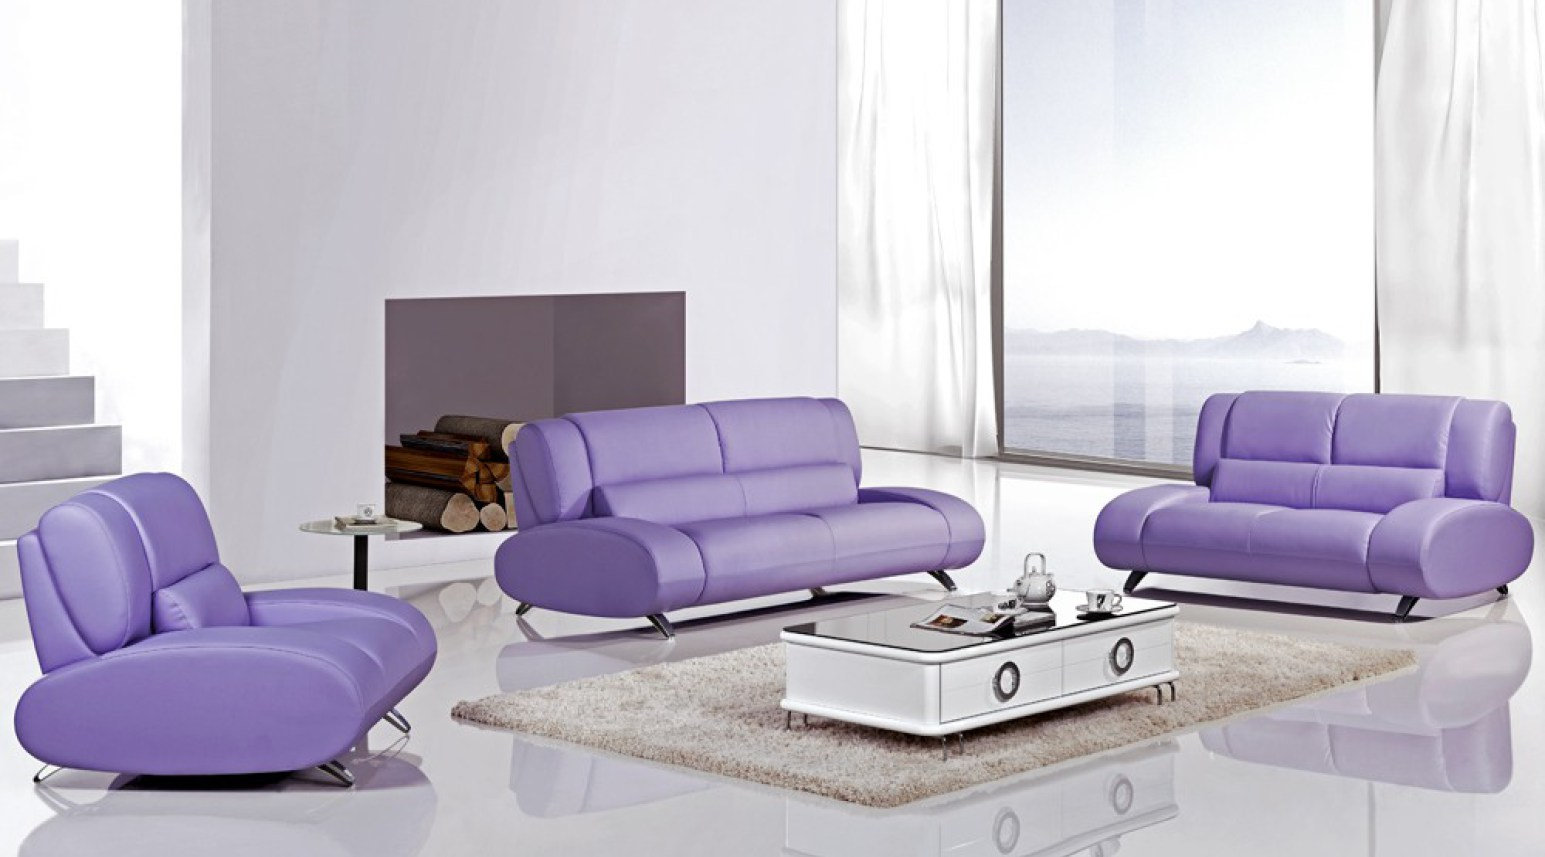 Purple Fainting Couch | Living Room with Purple Sofa | Purple Sofa